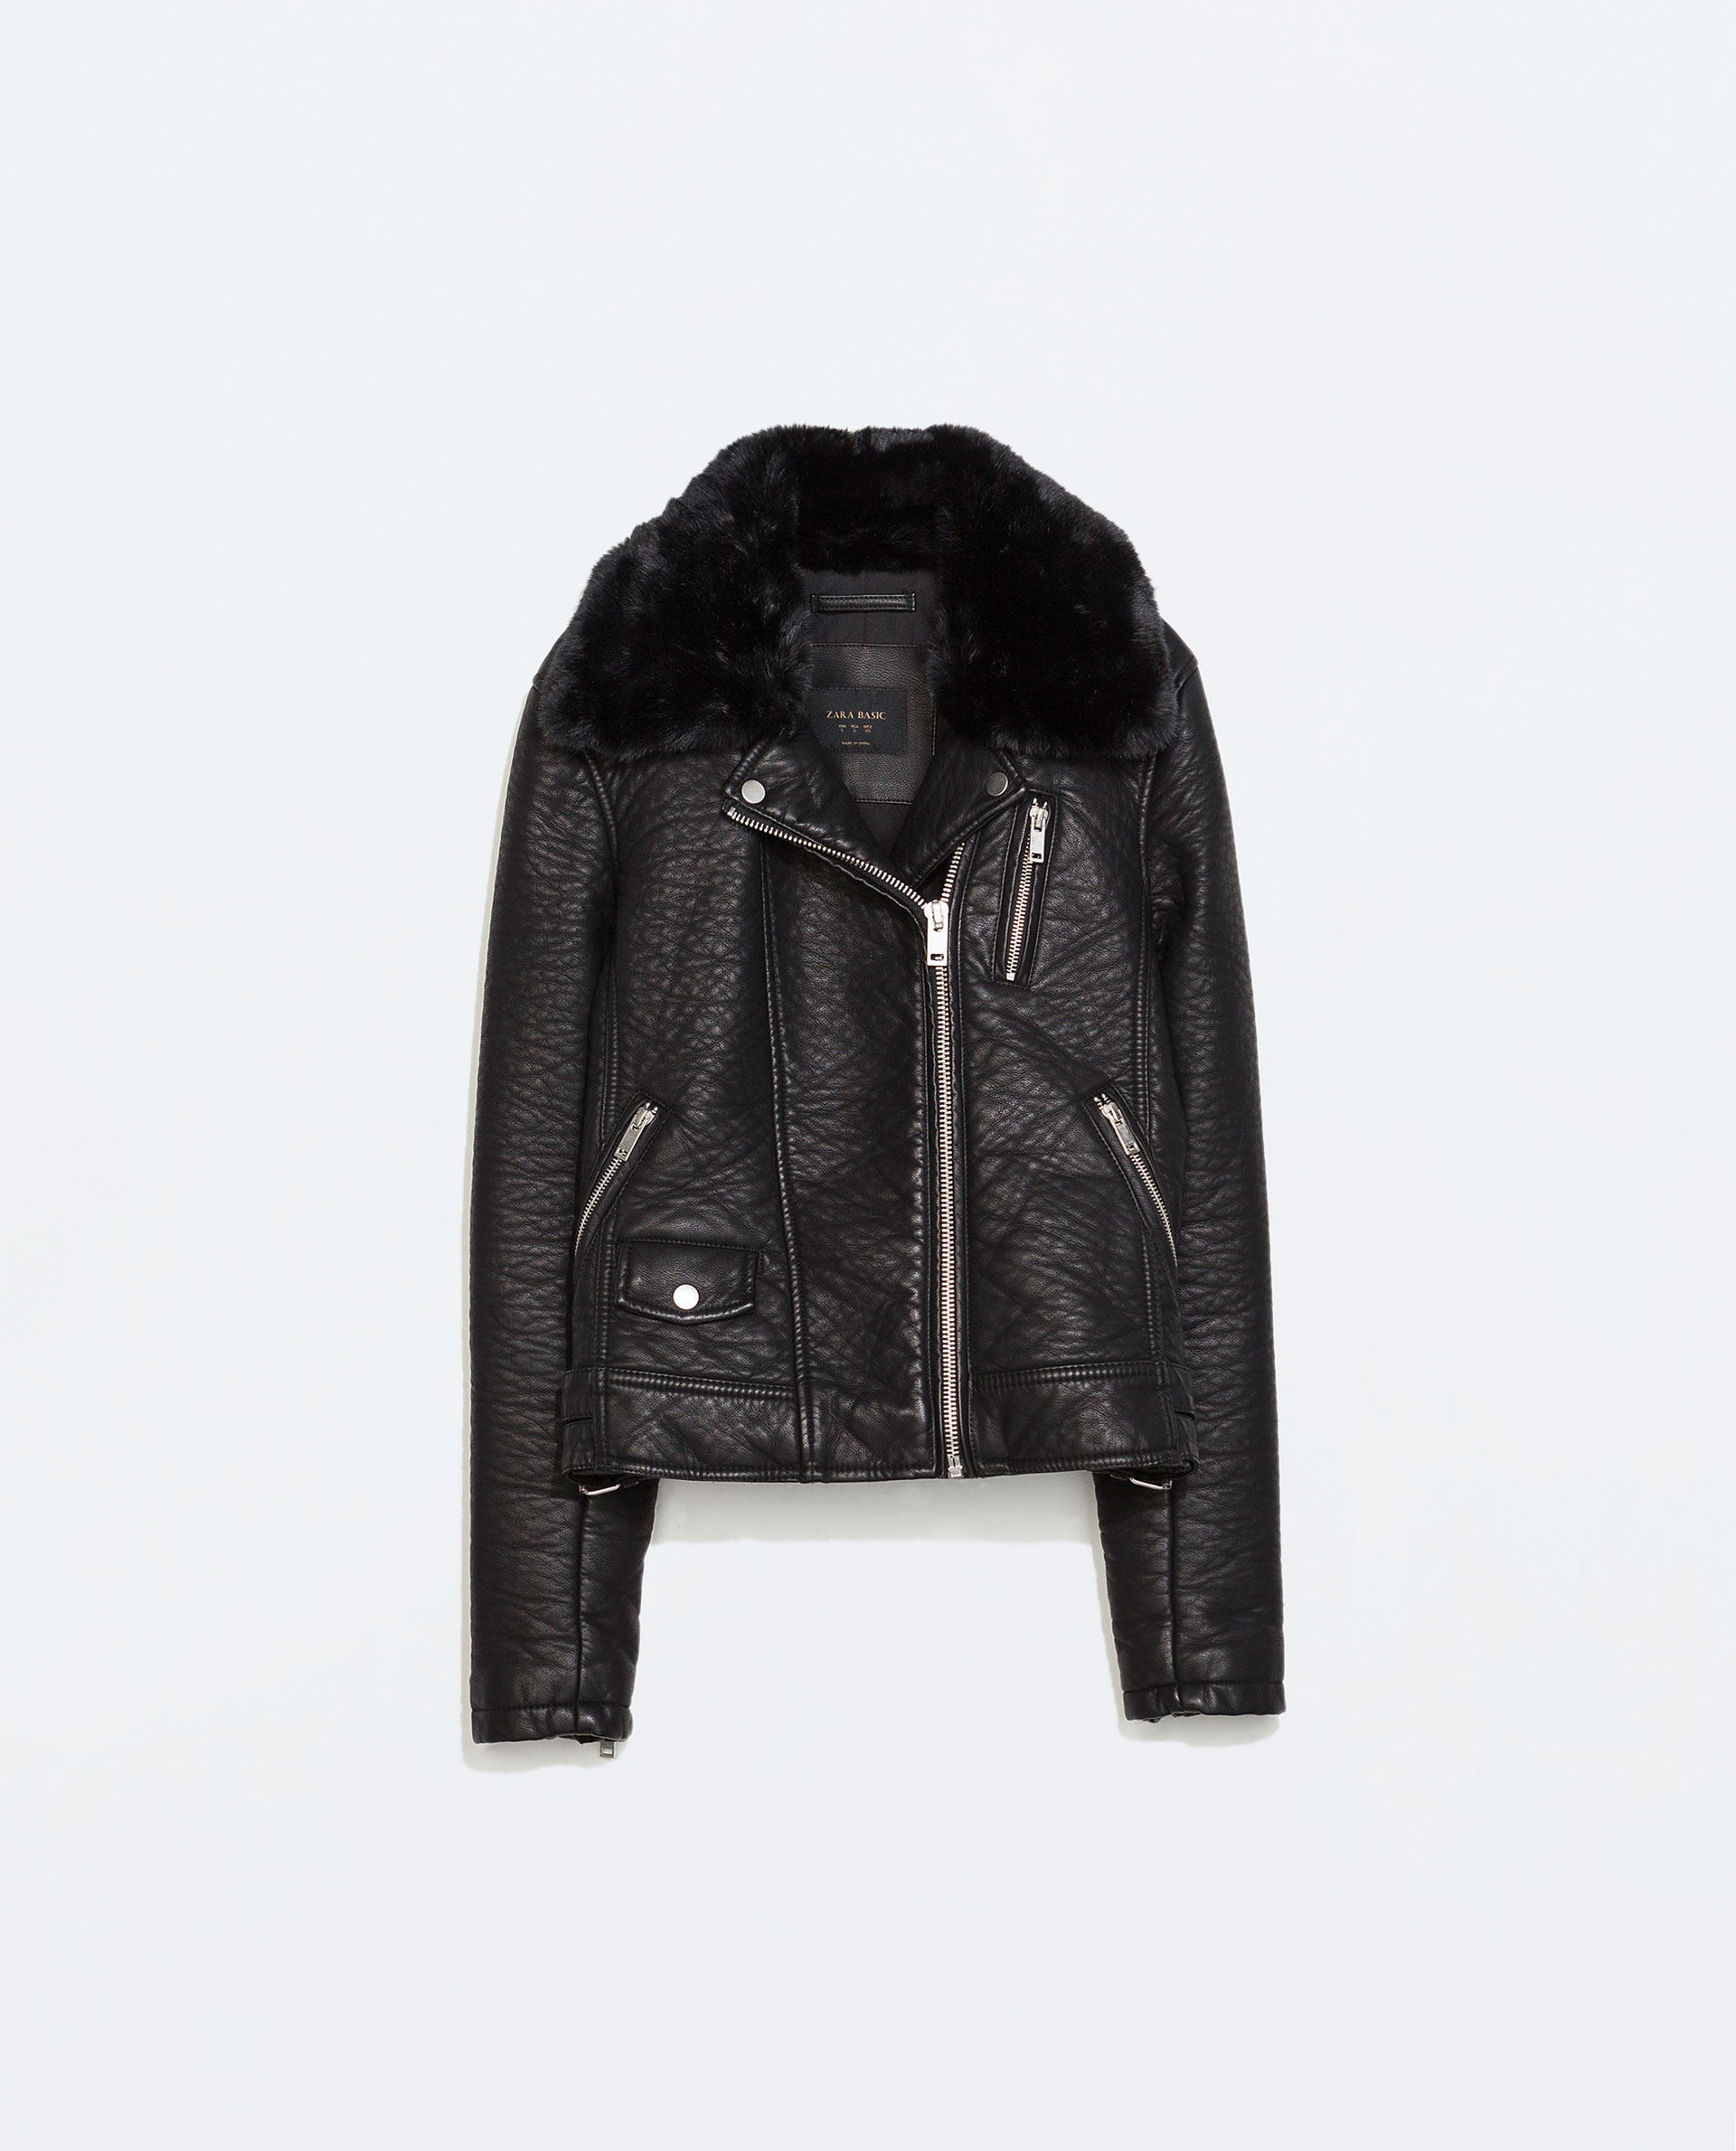 7c7d8733b4d6 Zara Faux Leather Jacket with Detachable Fur Collar in .